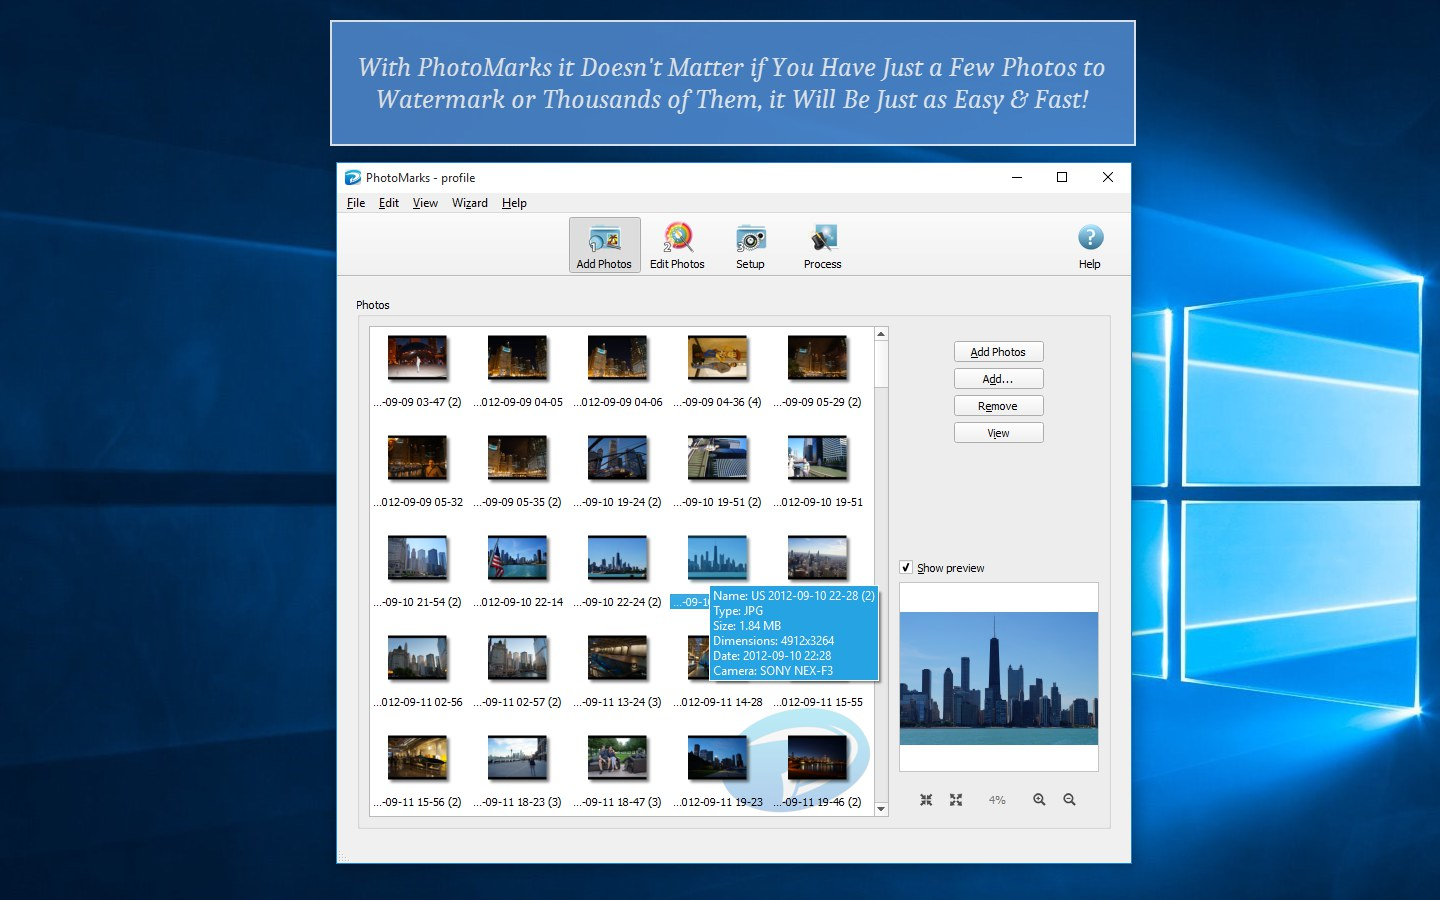 Top 10 Apps to Protect Photos on Windows